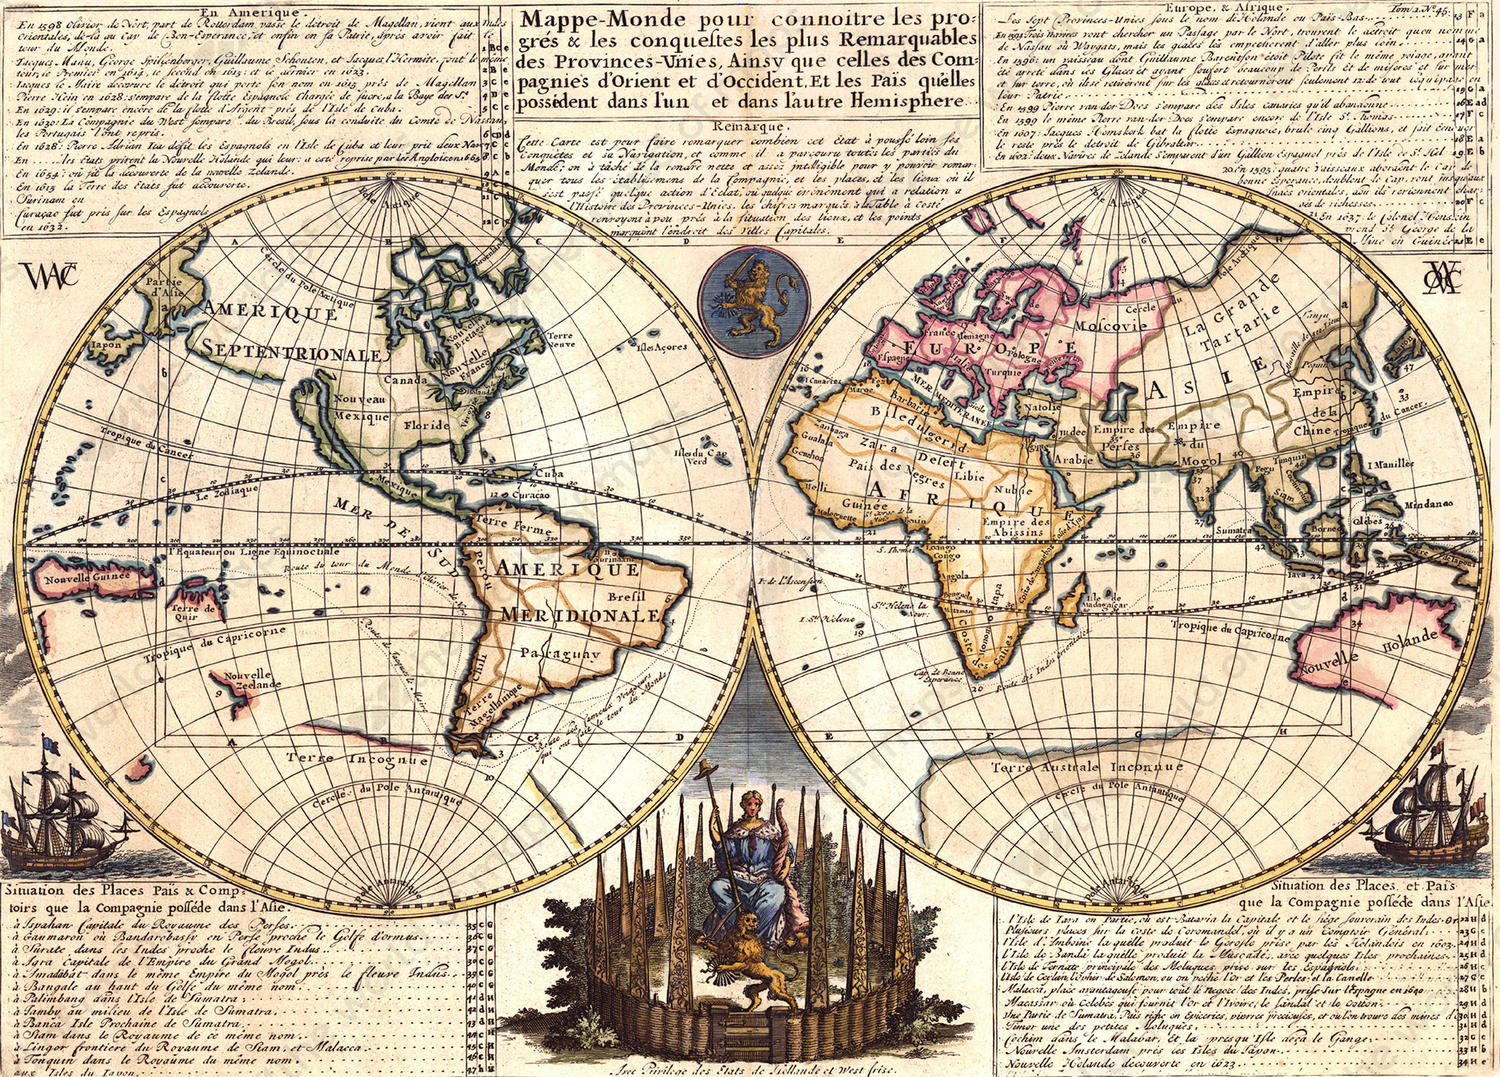 Digital world map year 1728 chatelain 1341 the world of maps digital world map year 1728 chatelain 1341 gumiabroncs Gallery